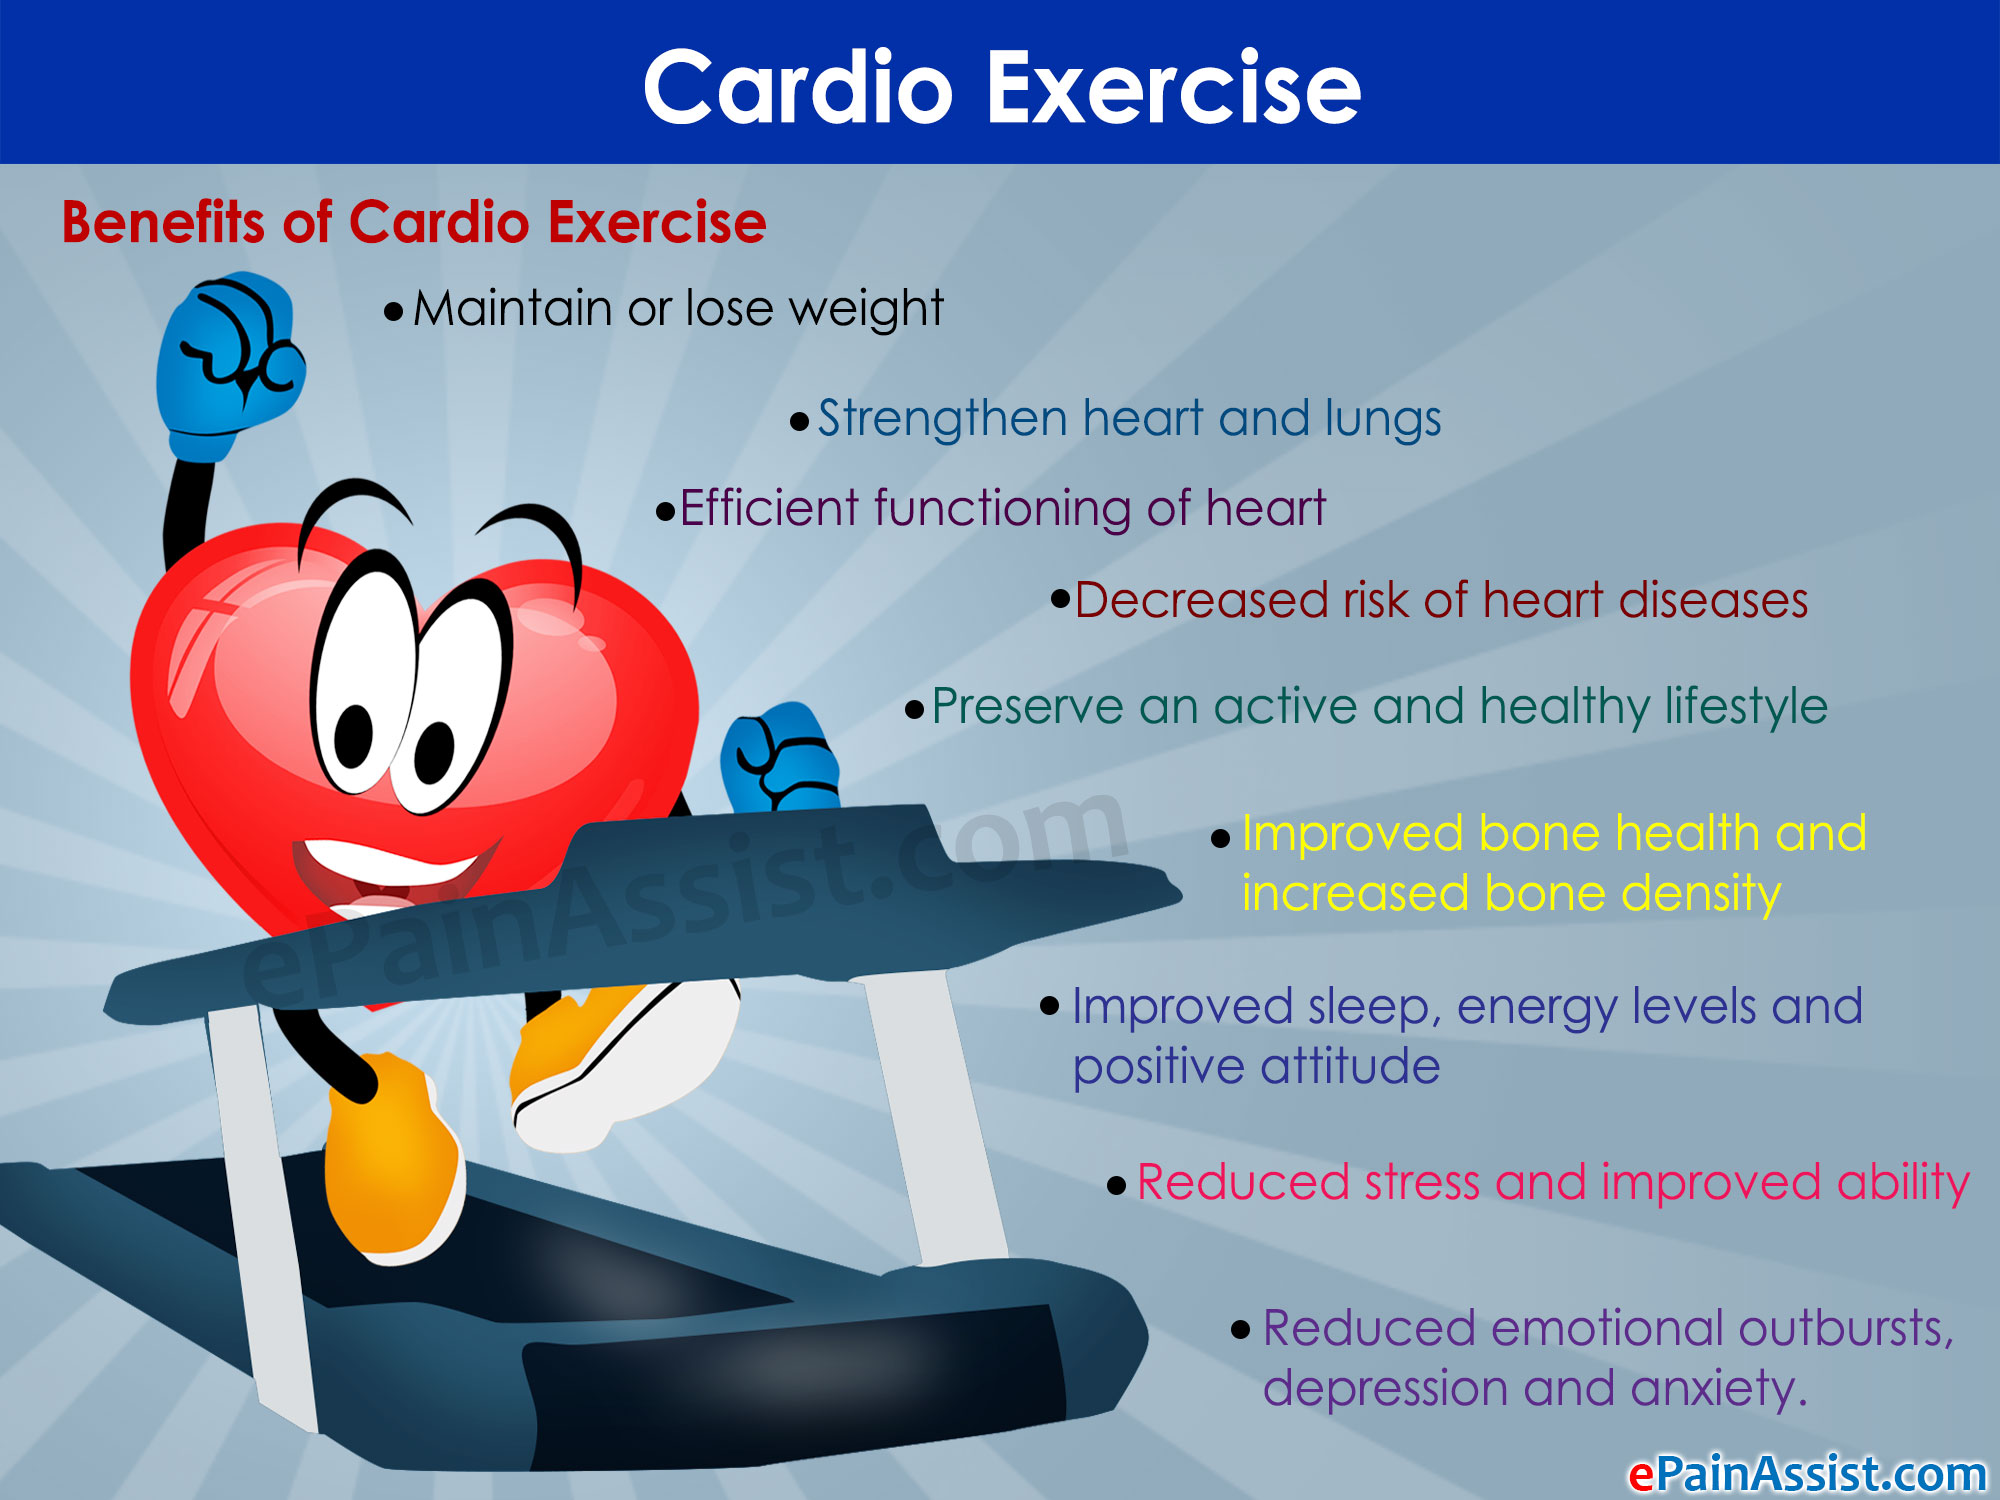 Benefits of Cardio Exercise